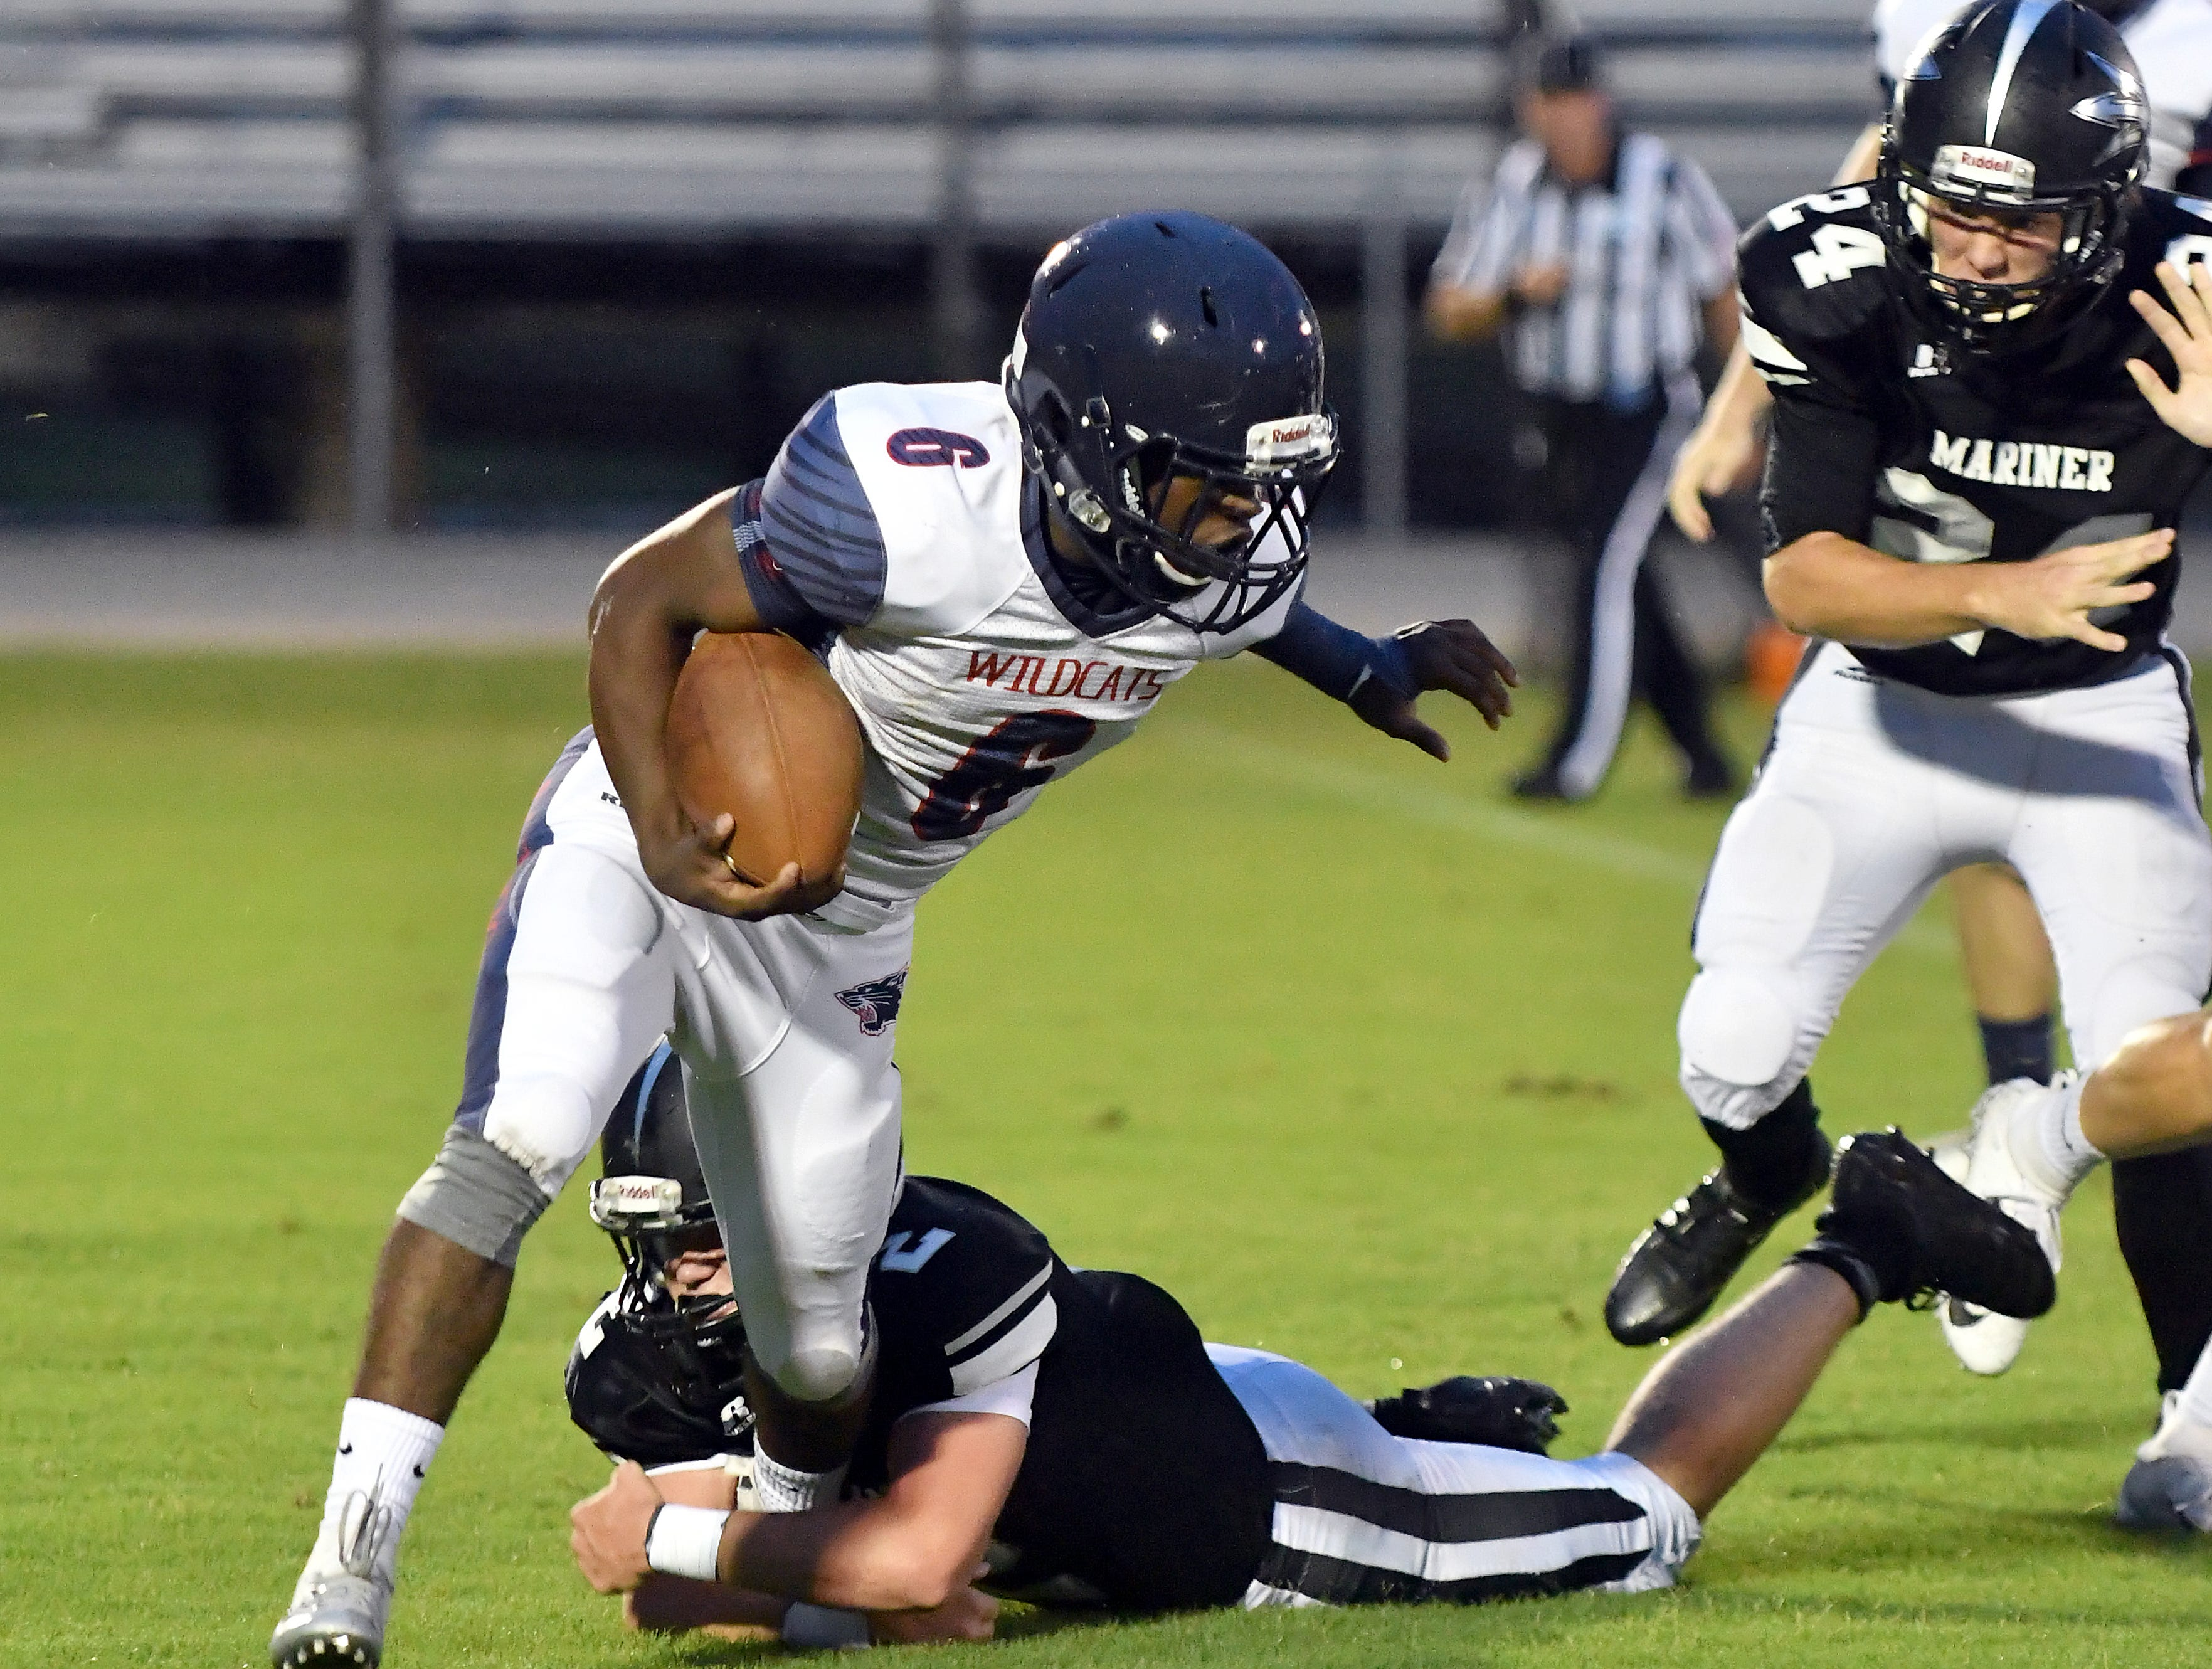 Estero High School running back Derrick Peart (6) tries block a Mariner High School defender during thier game in Cape Coral Monday, Aug. 27, 2018.